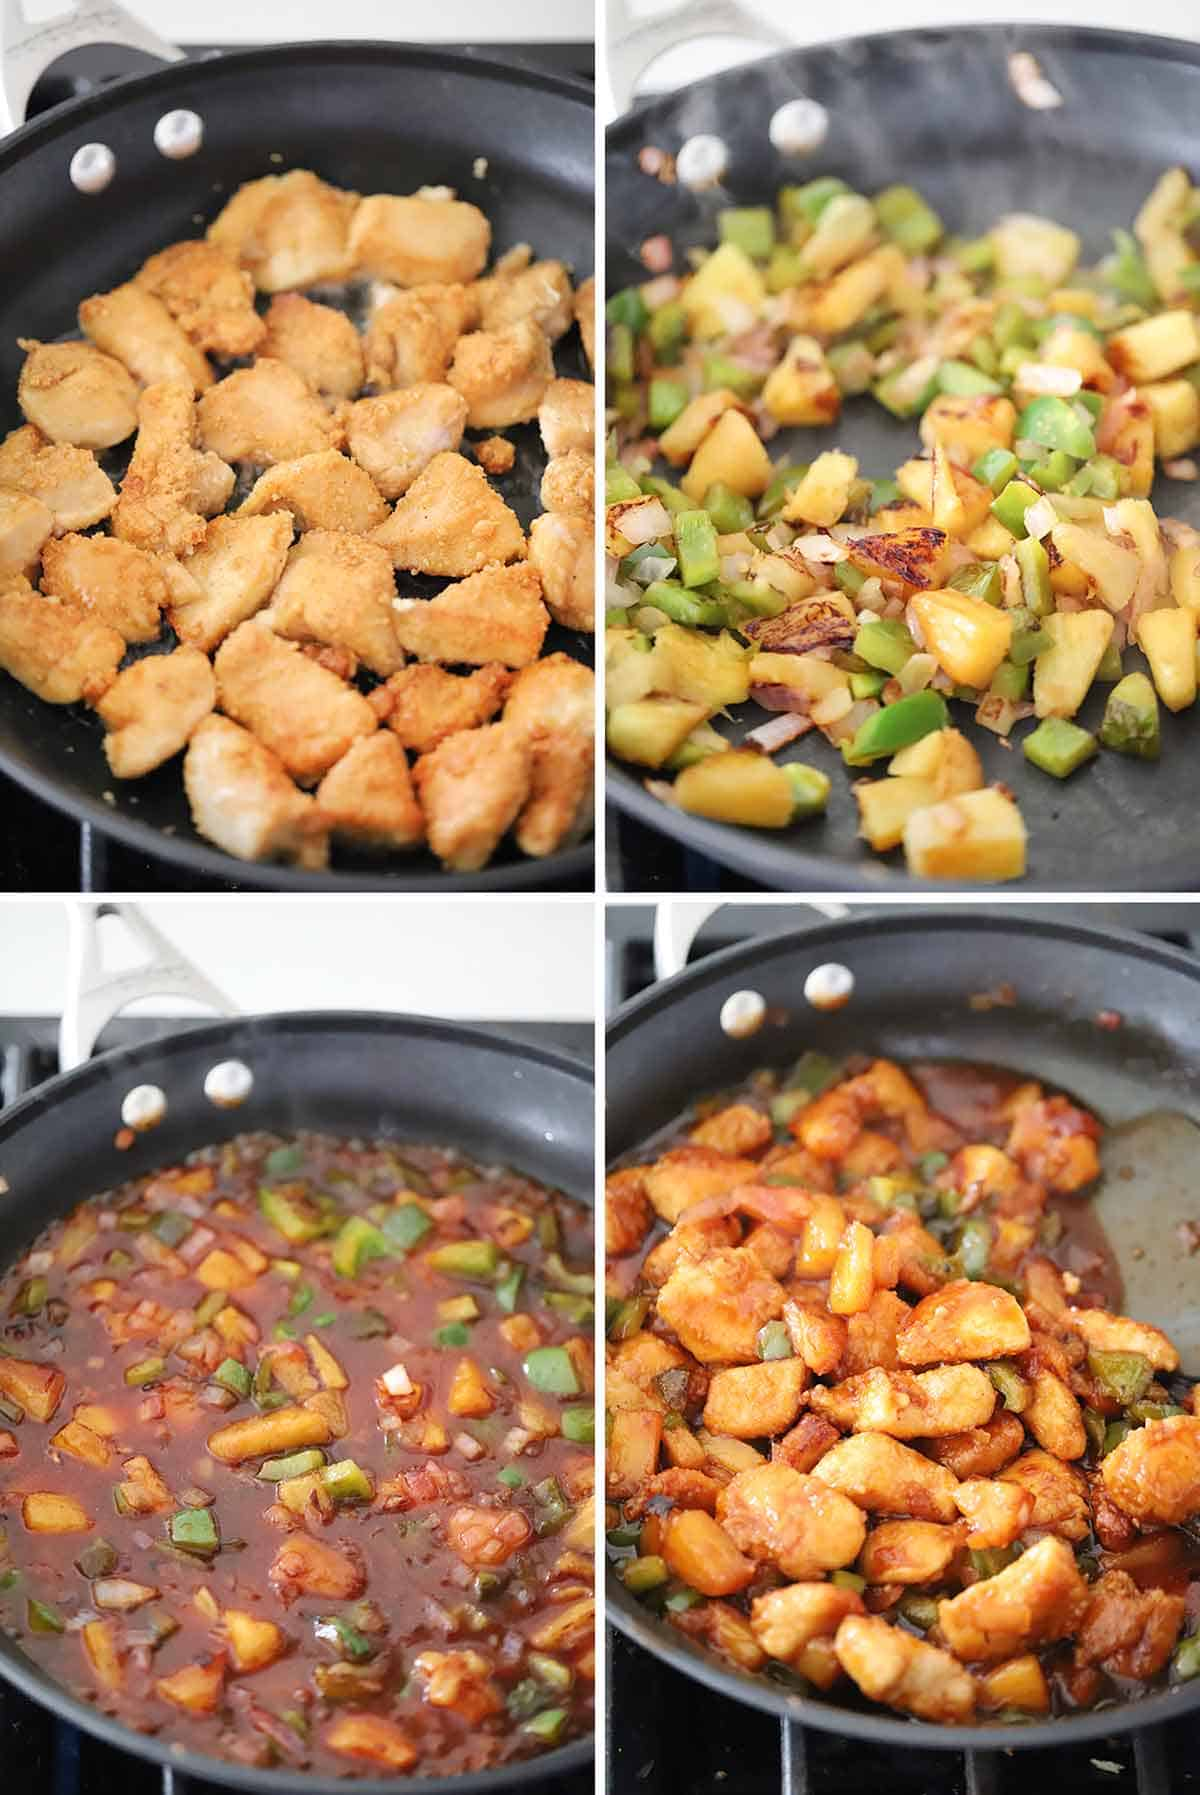 Process collage showing how to make sweet and sour chicken in a skillet.